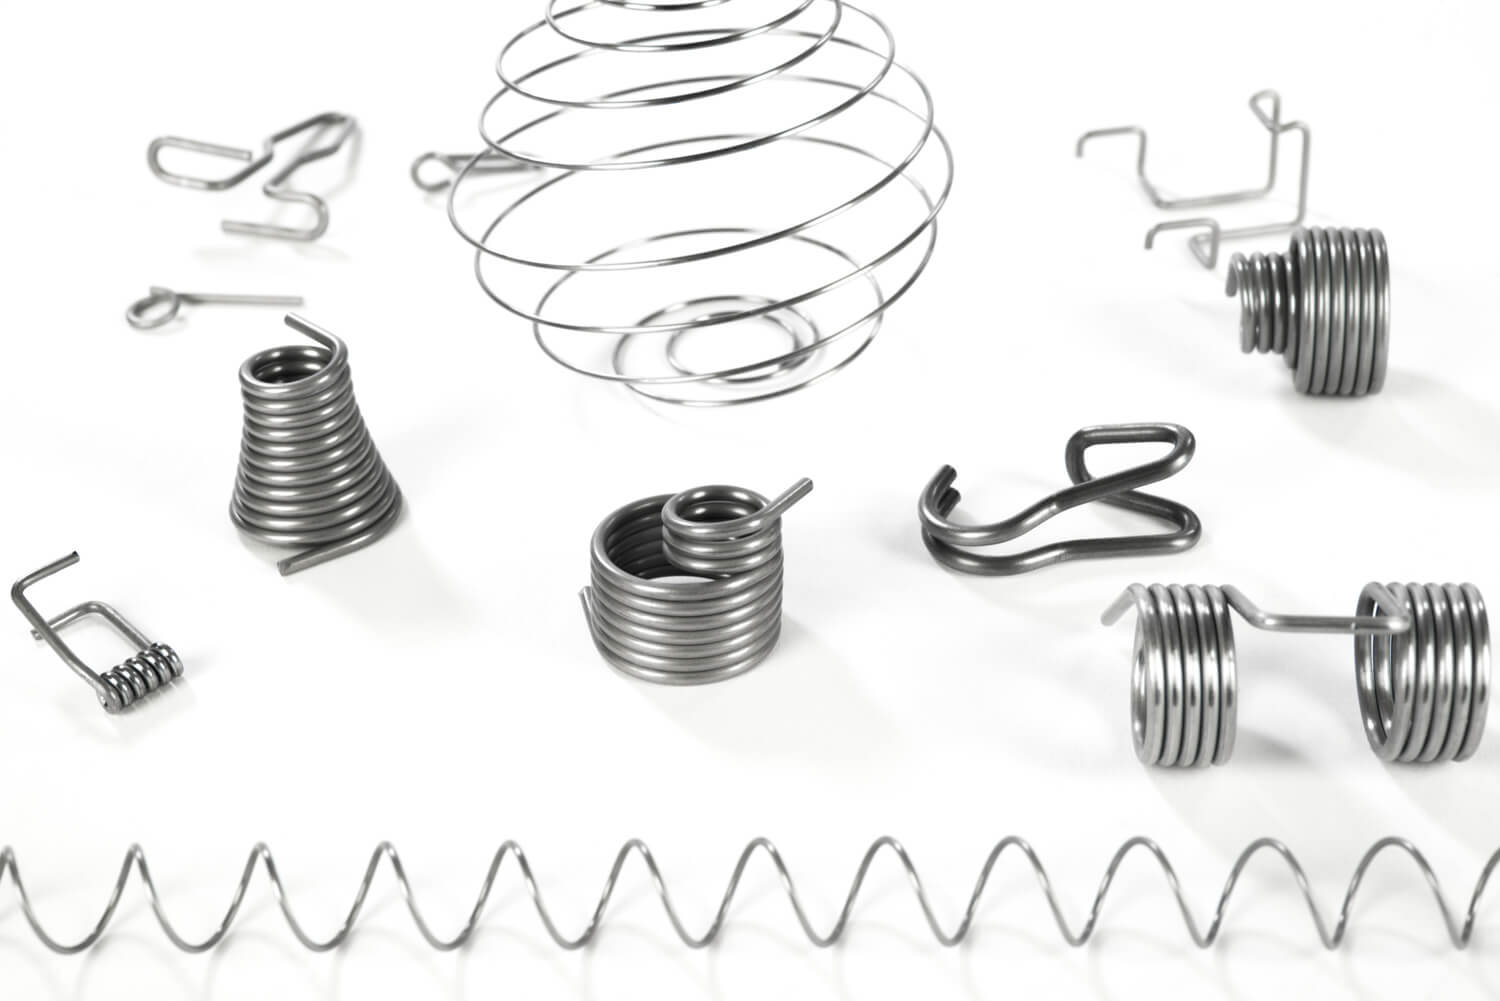 Wire springs | Hinterdobler Fabrikations GmbH